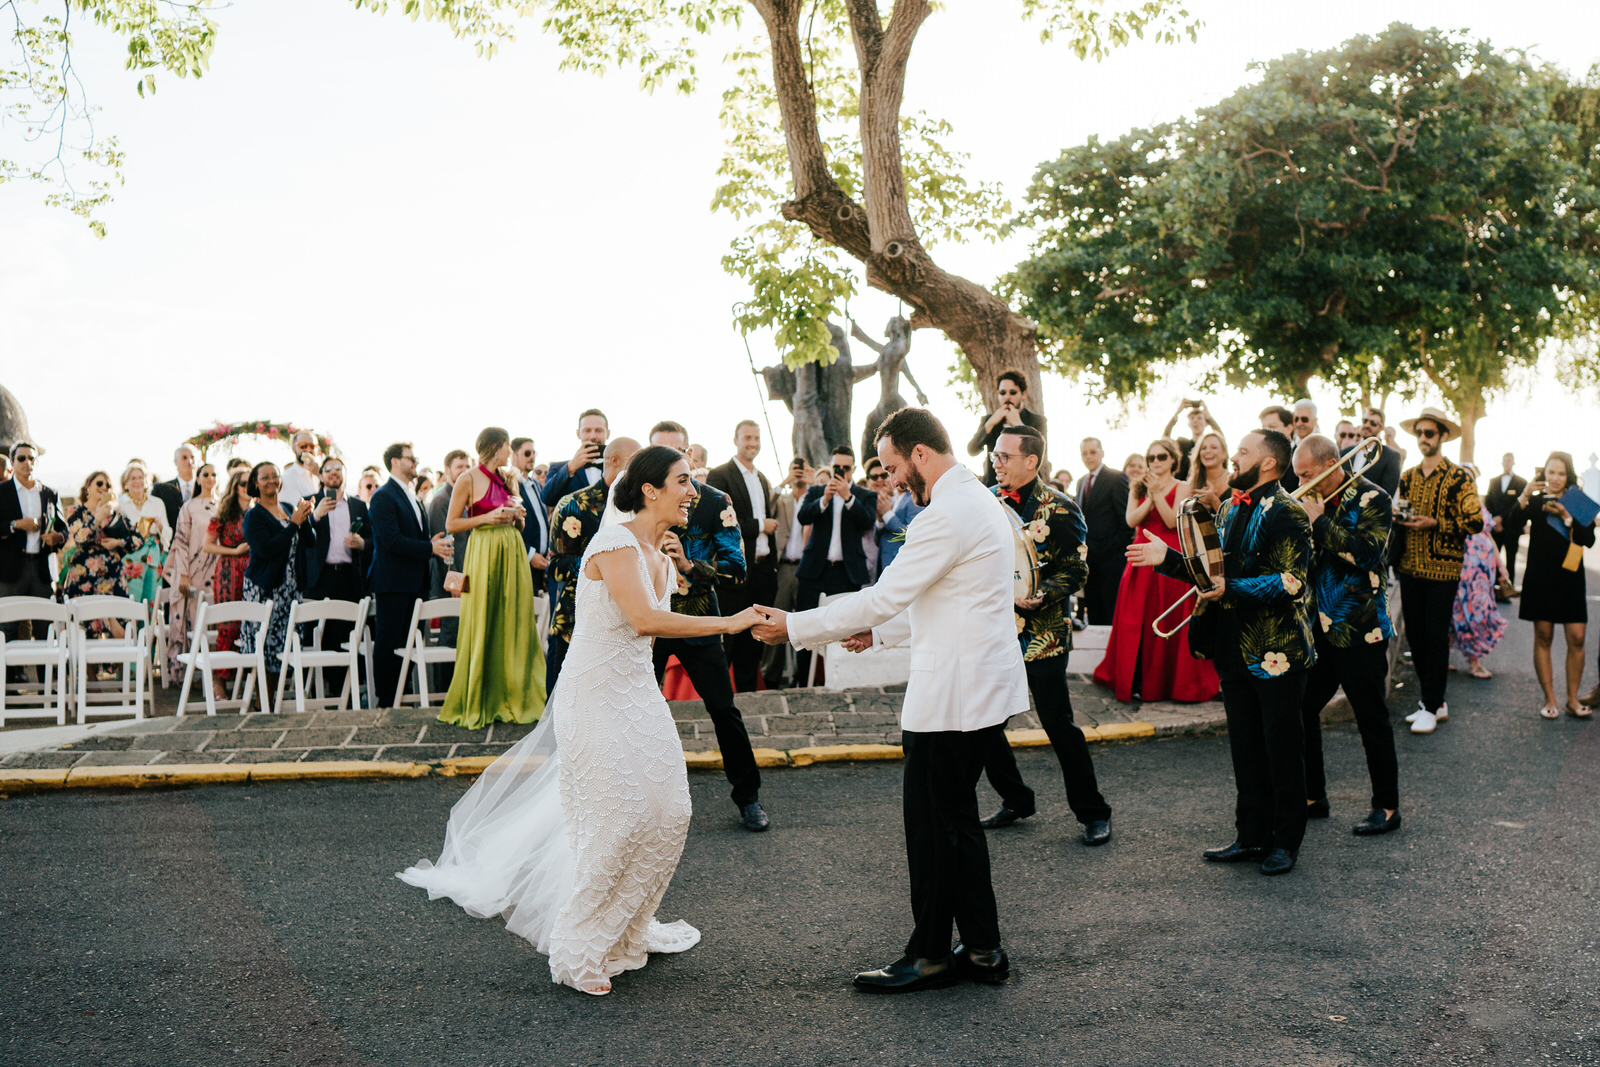 Bride and groom have walked back down the aisle and are seen dancing on the streets of Old San Juan after their wedding ceremony